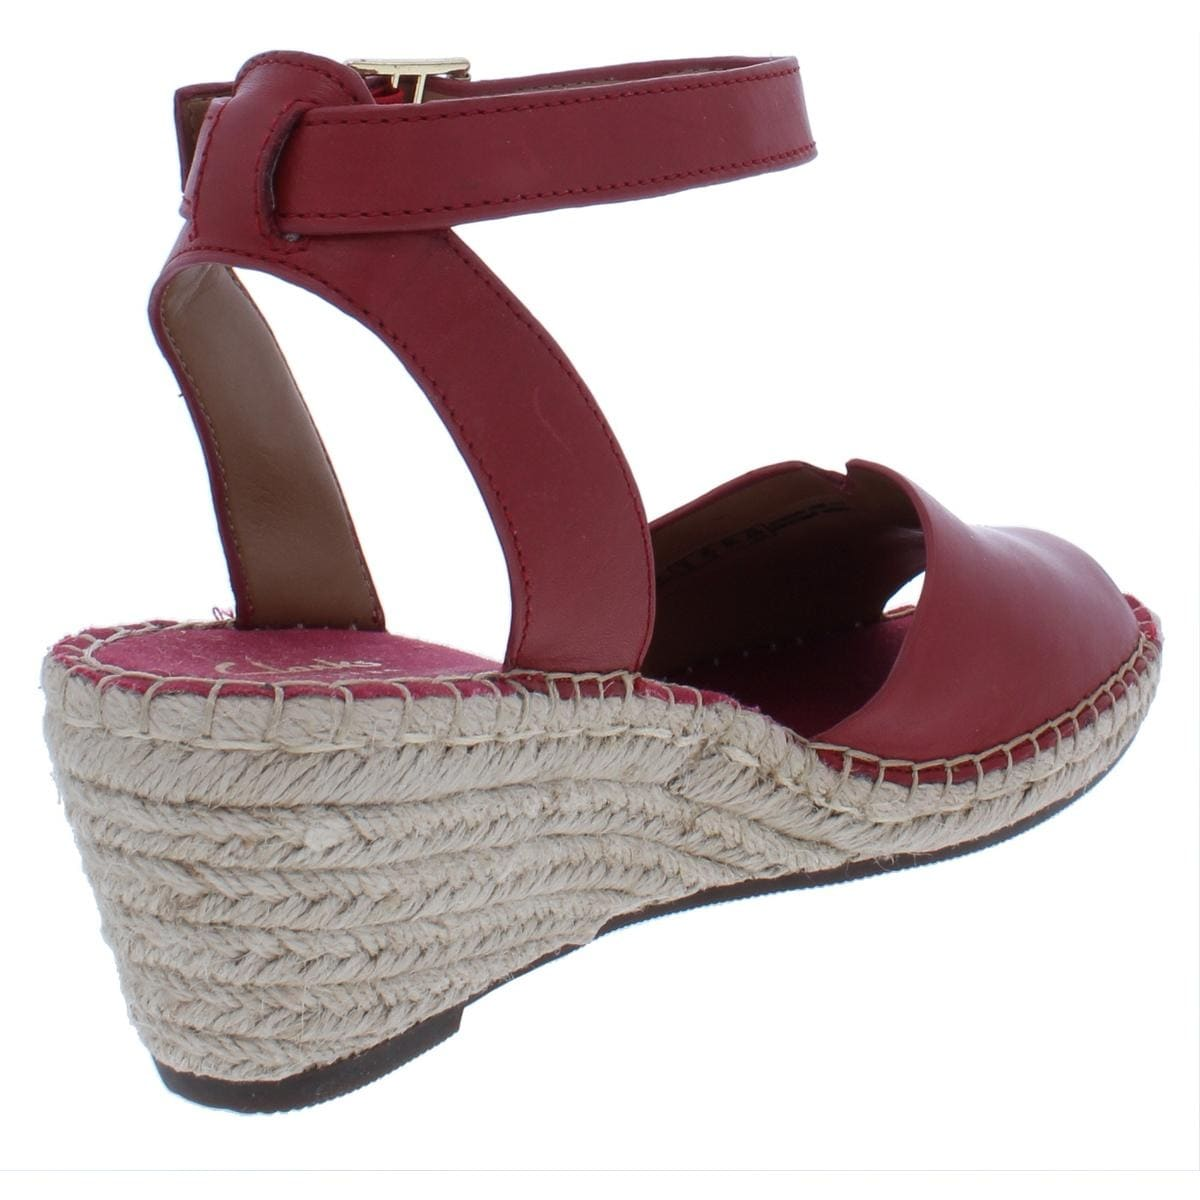 98708cc0877 Shop Clarks Womens Petrina Selma Wedge Sandals Leather Espadrilles - Free  Shipping Today - Overstock - 25400101